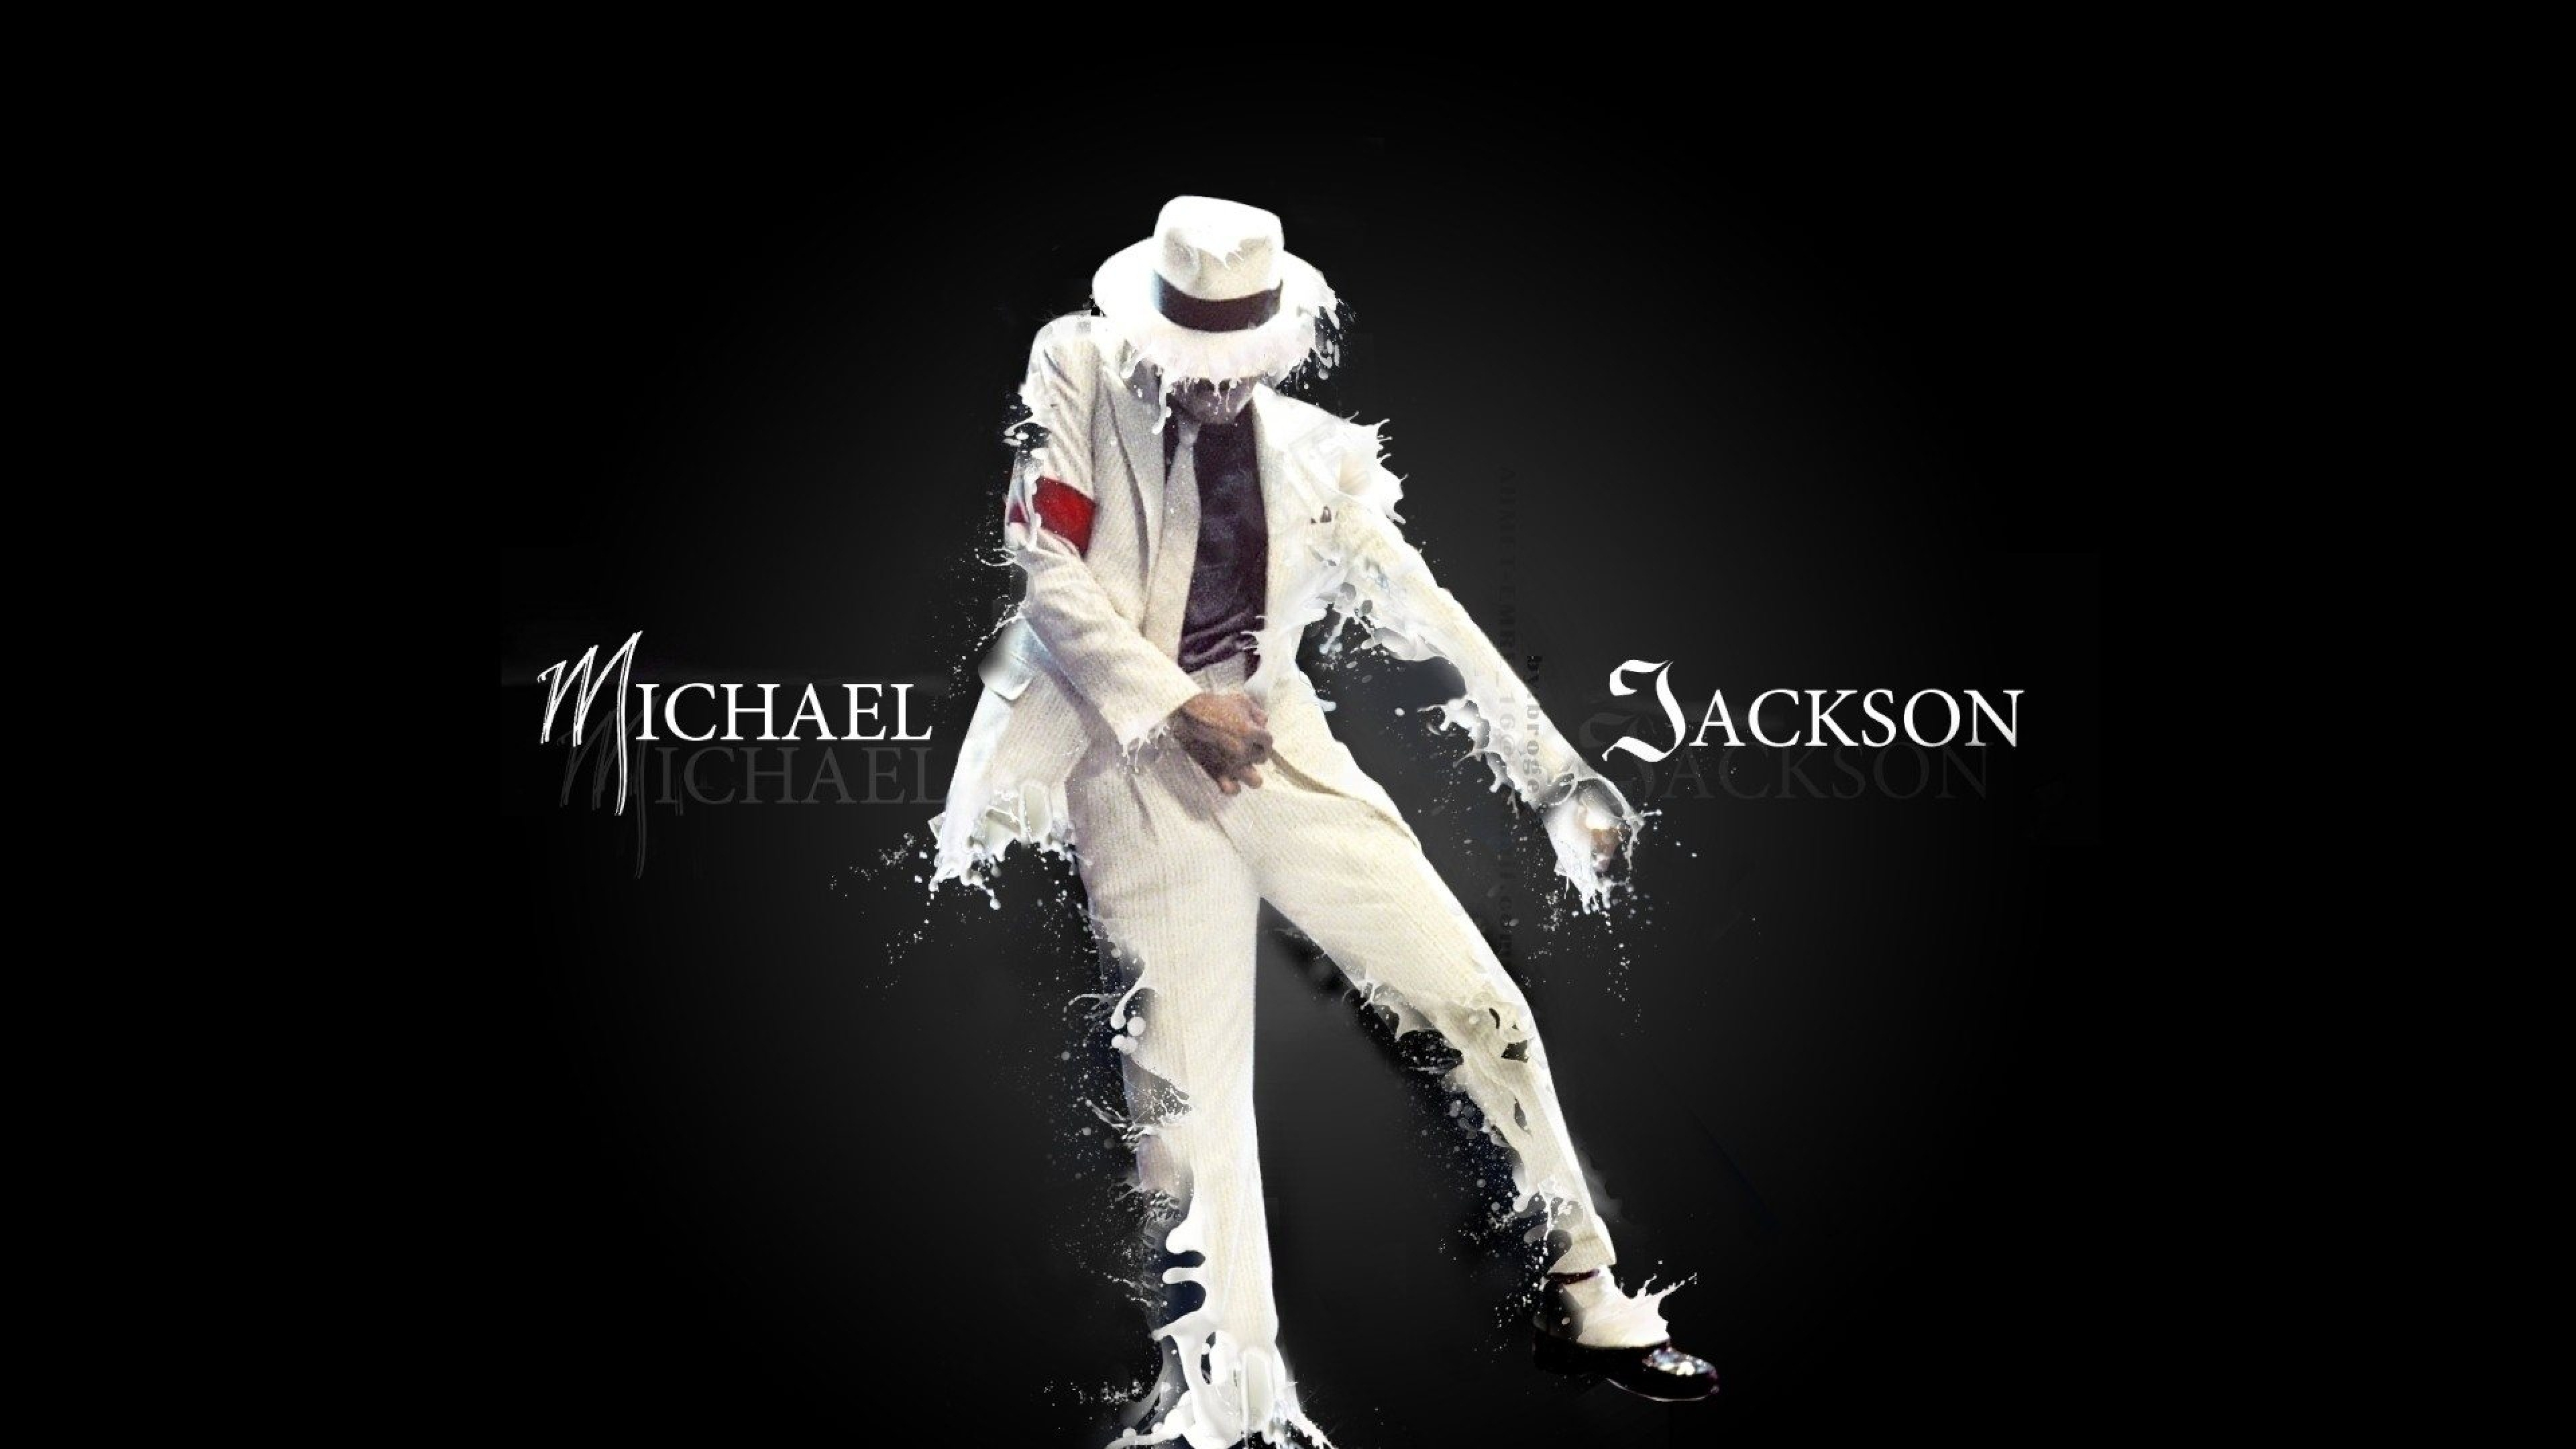 Real 3d Wallpaper Hd Free Hd Michael Jackson Wallpapers Pixelstalk Net